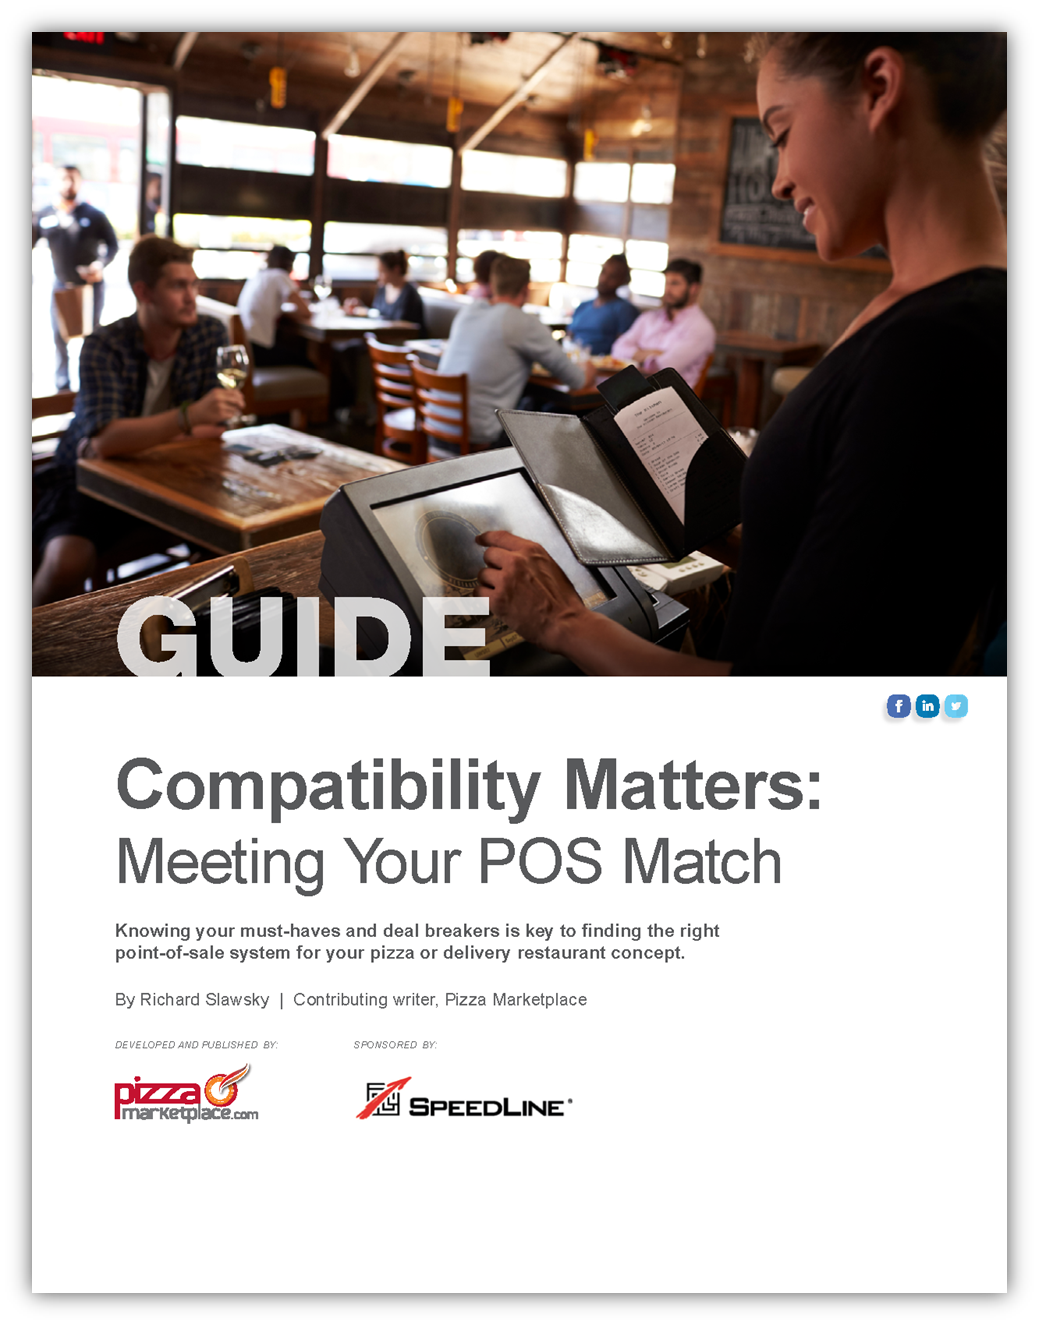 [New Guide] Compatibility Matters: Meeting Your POS Match